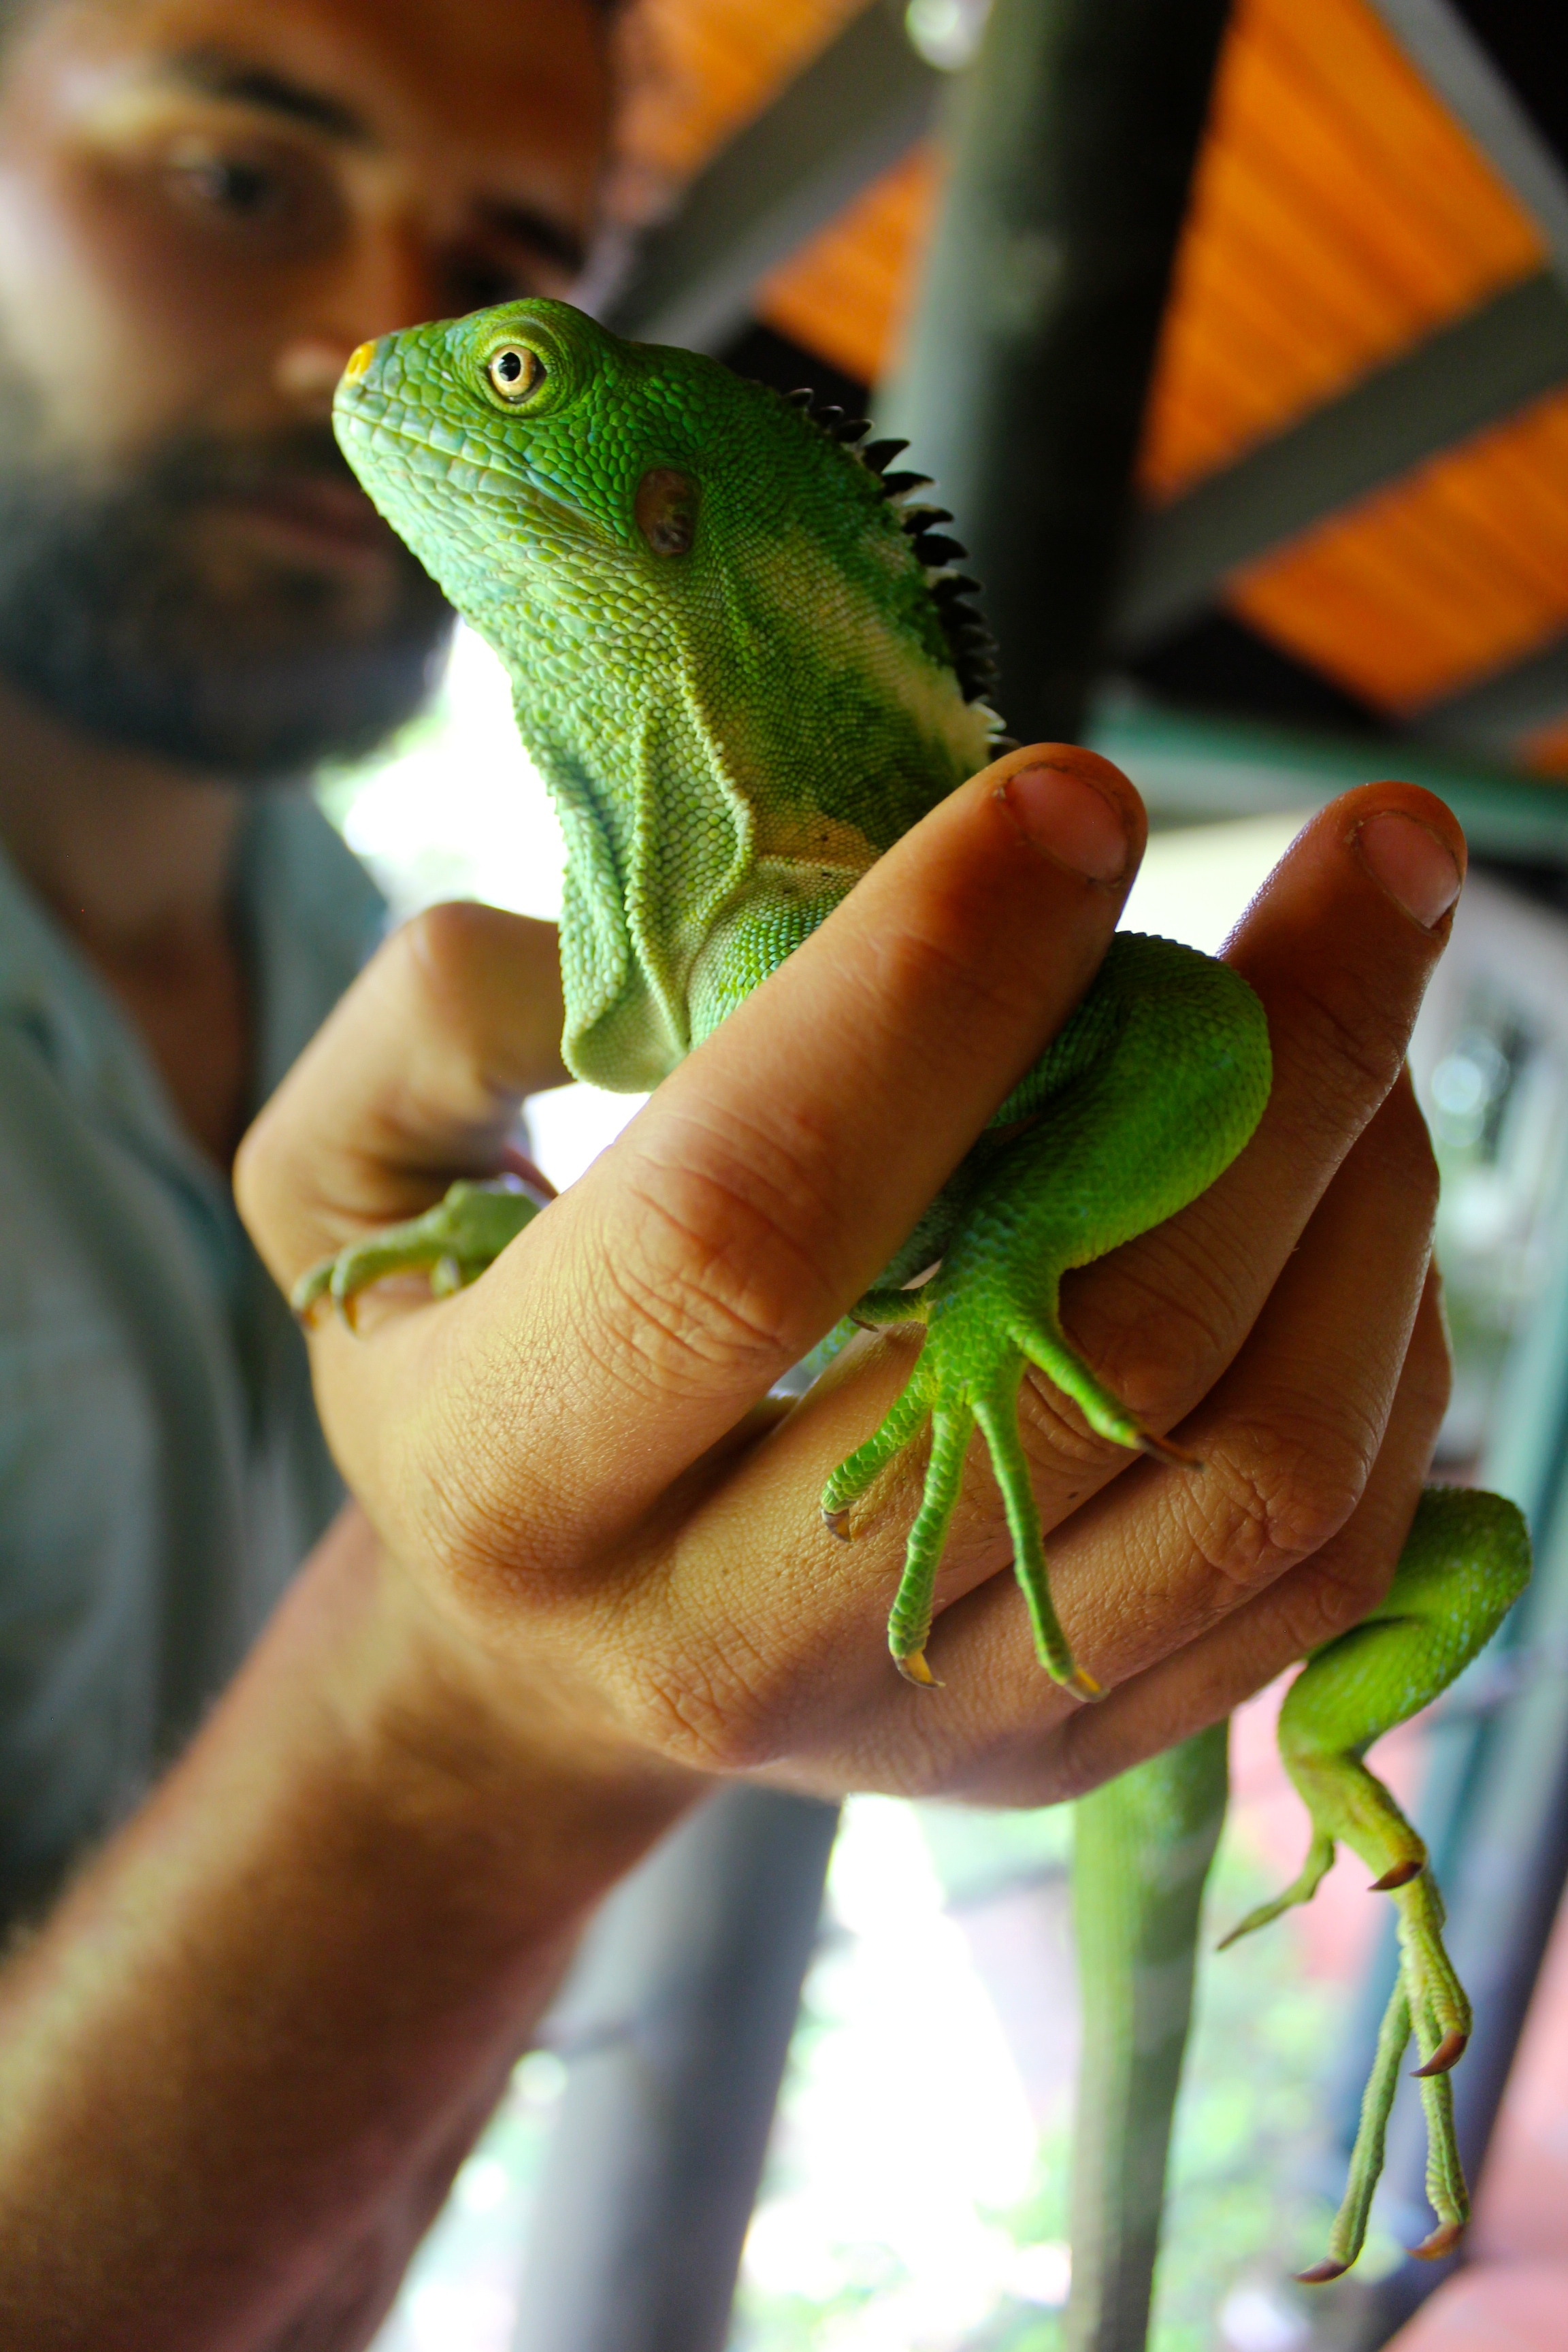 Jack with the Fijian Crested Iguana